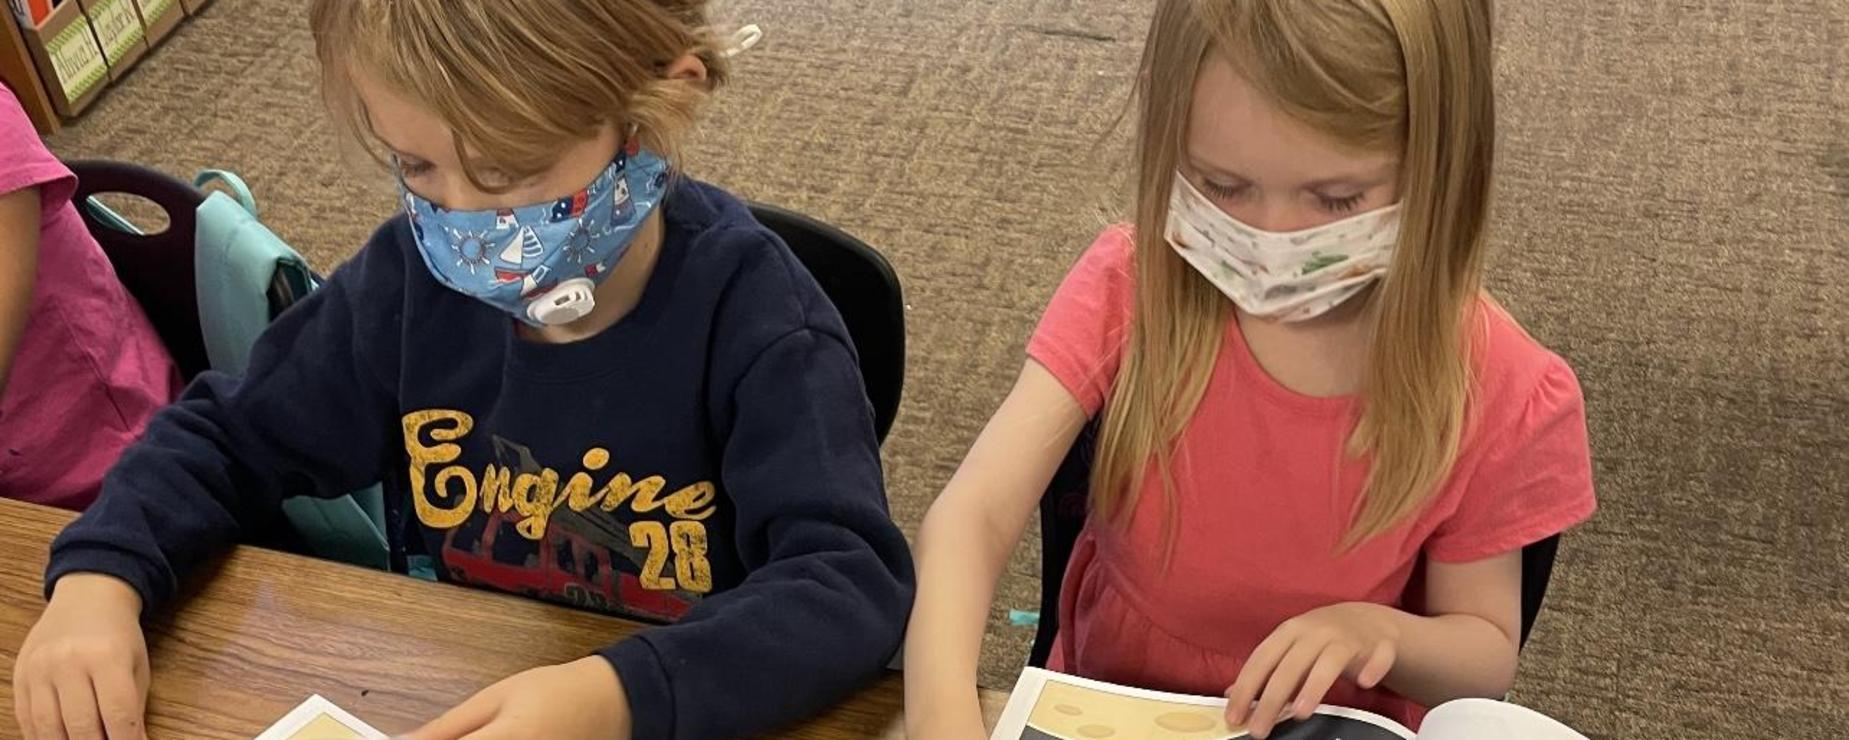 Students reading books about space.